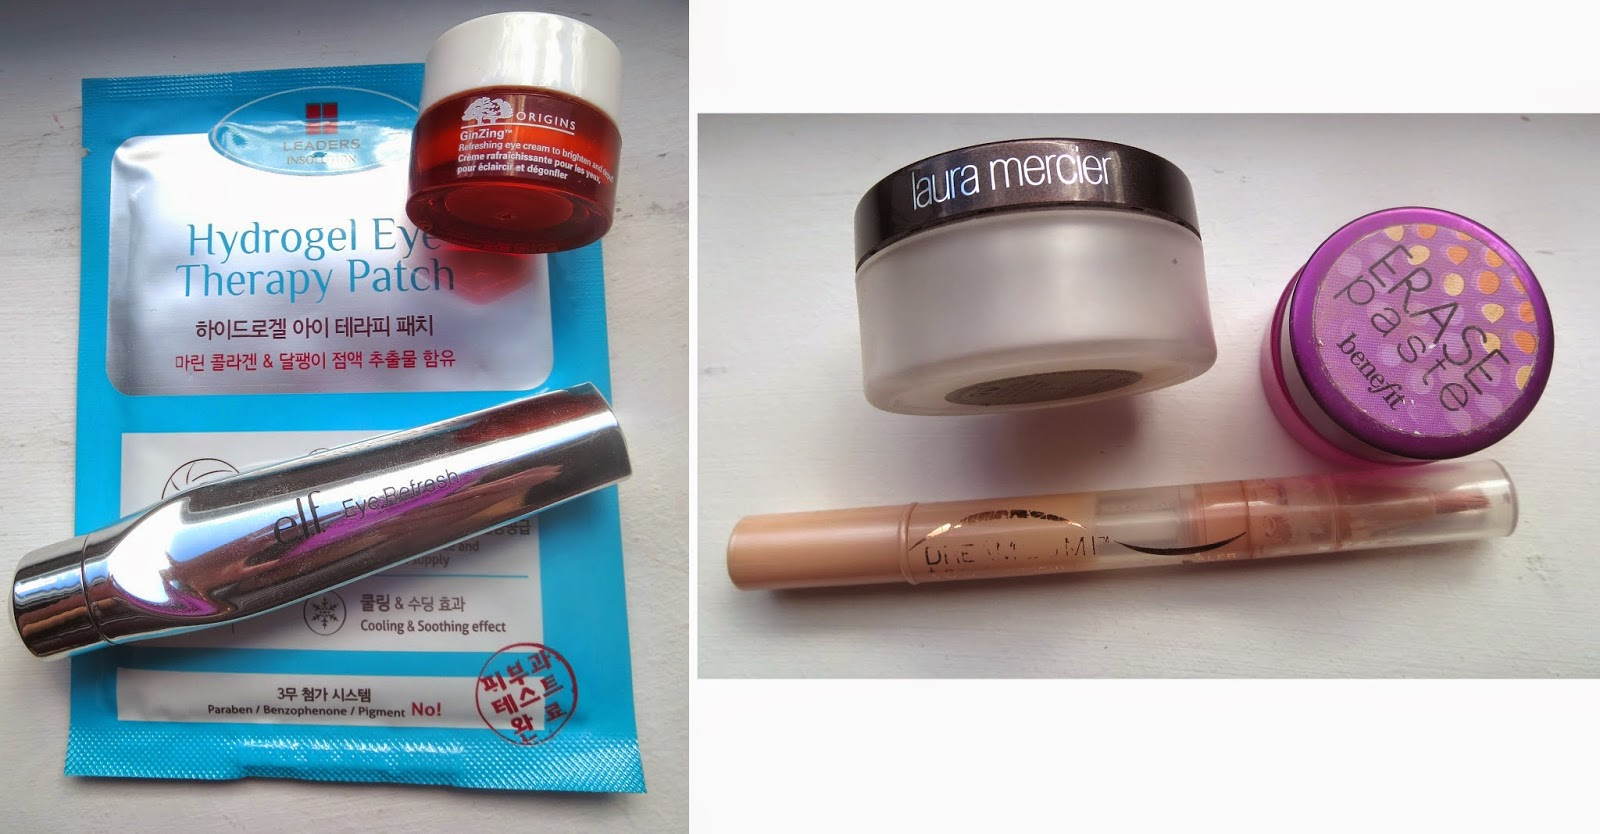 Treat & Conceal : Leaders Hydrogel patch, e.l.f. eye refresher, origins ginzing refreshing eye cream, maybelline dream lumi, benefit erase paste, laura mercier secrete brightening powder